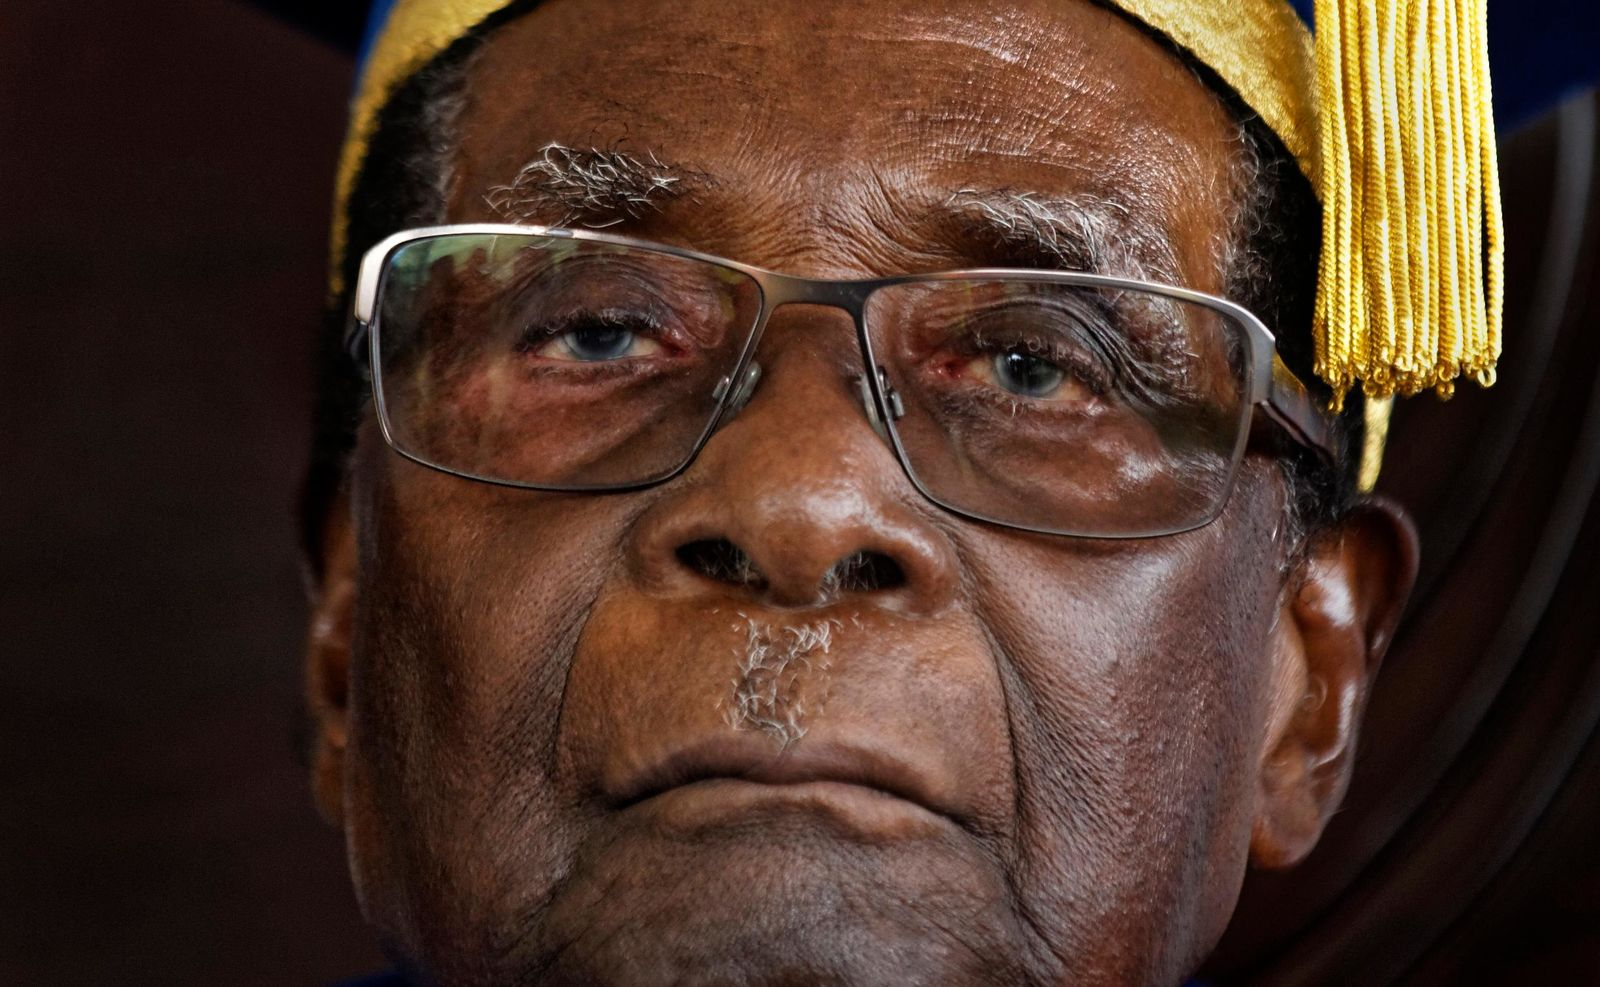 FILE -- In this Friday, Nov. 17, 2017 file photo, Zimbabwe's President Robert Mugabe officiates at a student graduation ceremony at Zimbabwe Open University on the outskirts of Harare, Zimbabwe. On Friday, Sept. 6, 2019, Zimbabwe President Emmerson Mnangagwa said his predecessor Robert Mugabe, age 95, has died.  (AP Photo/Ben Curtis, File)